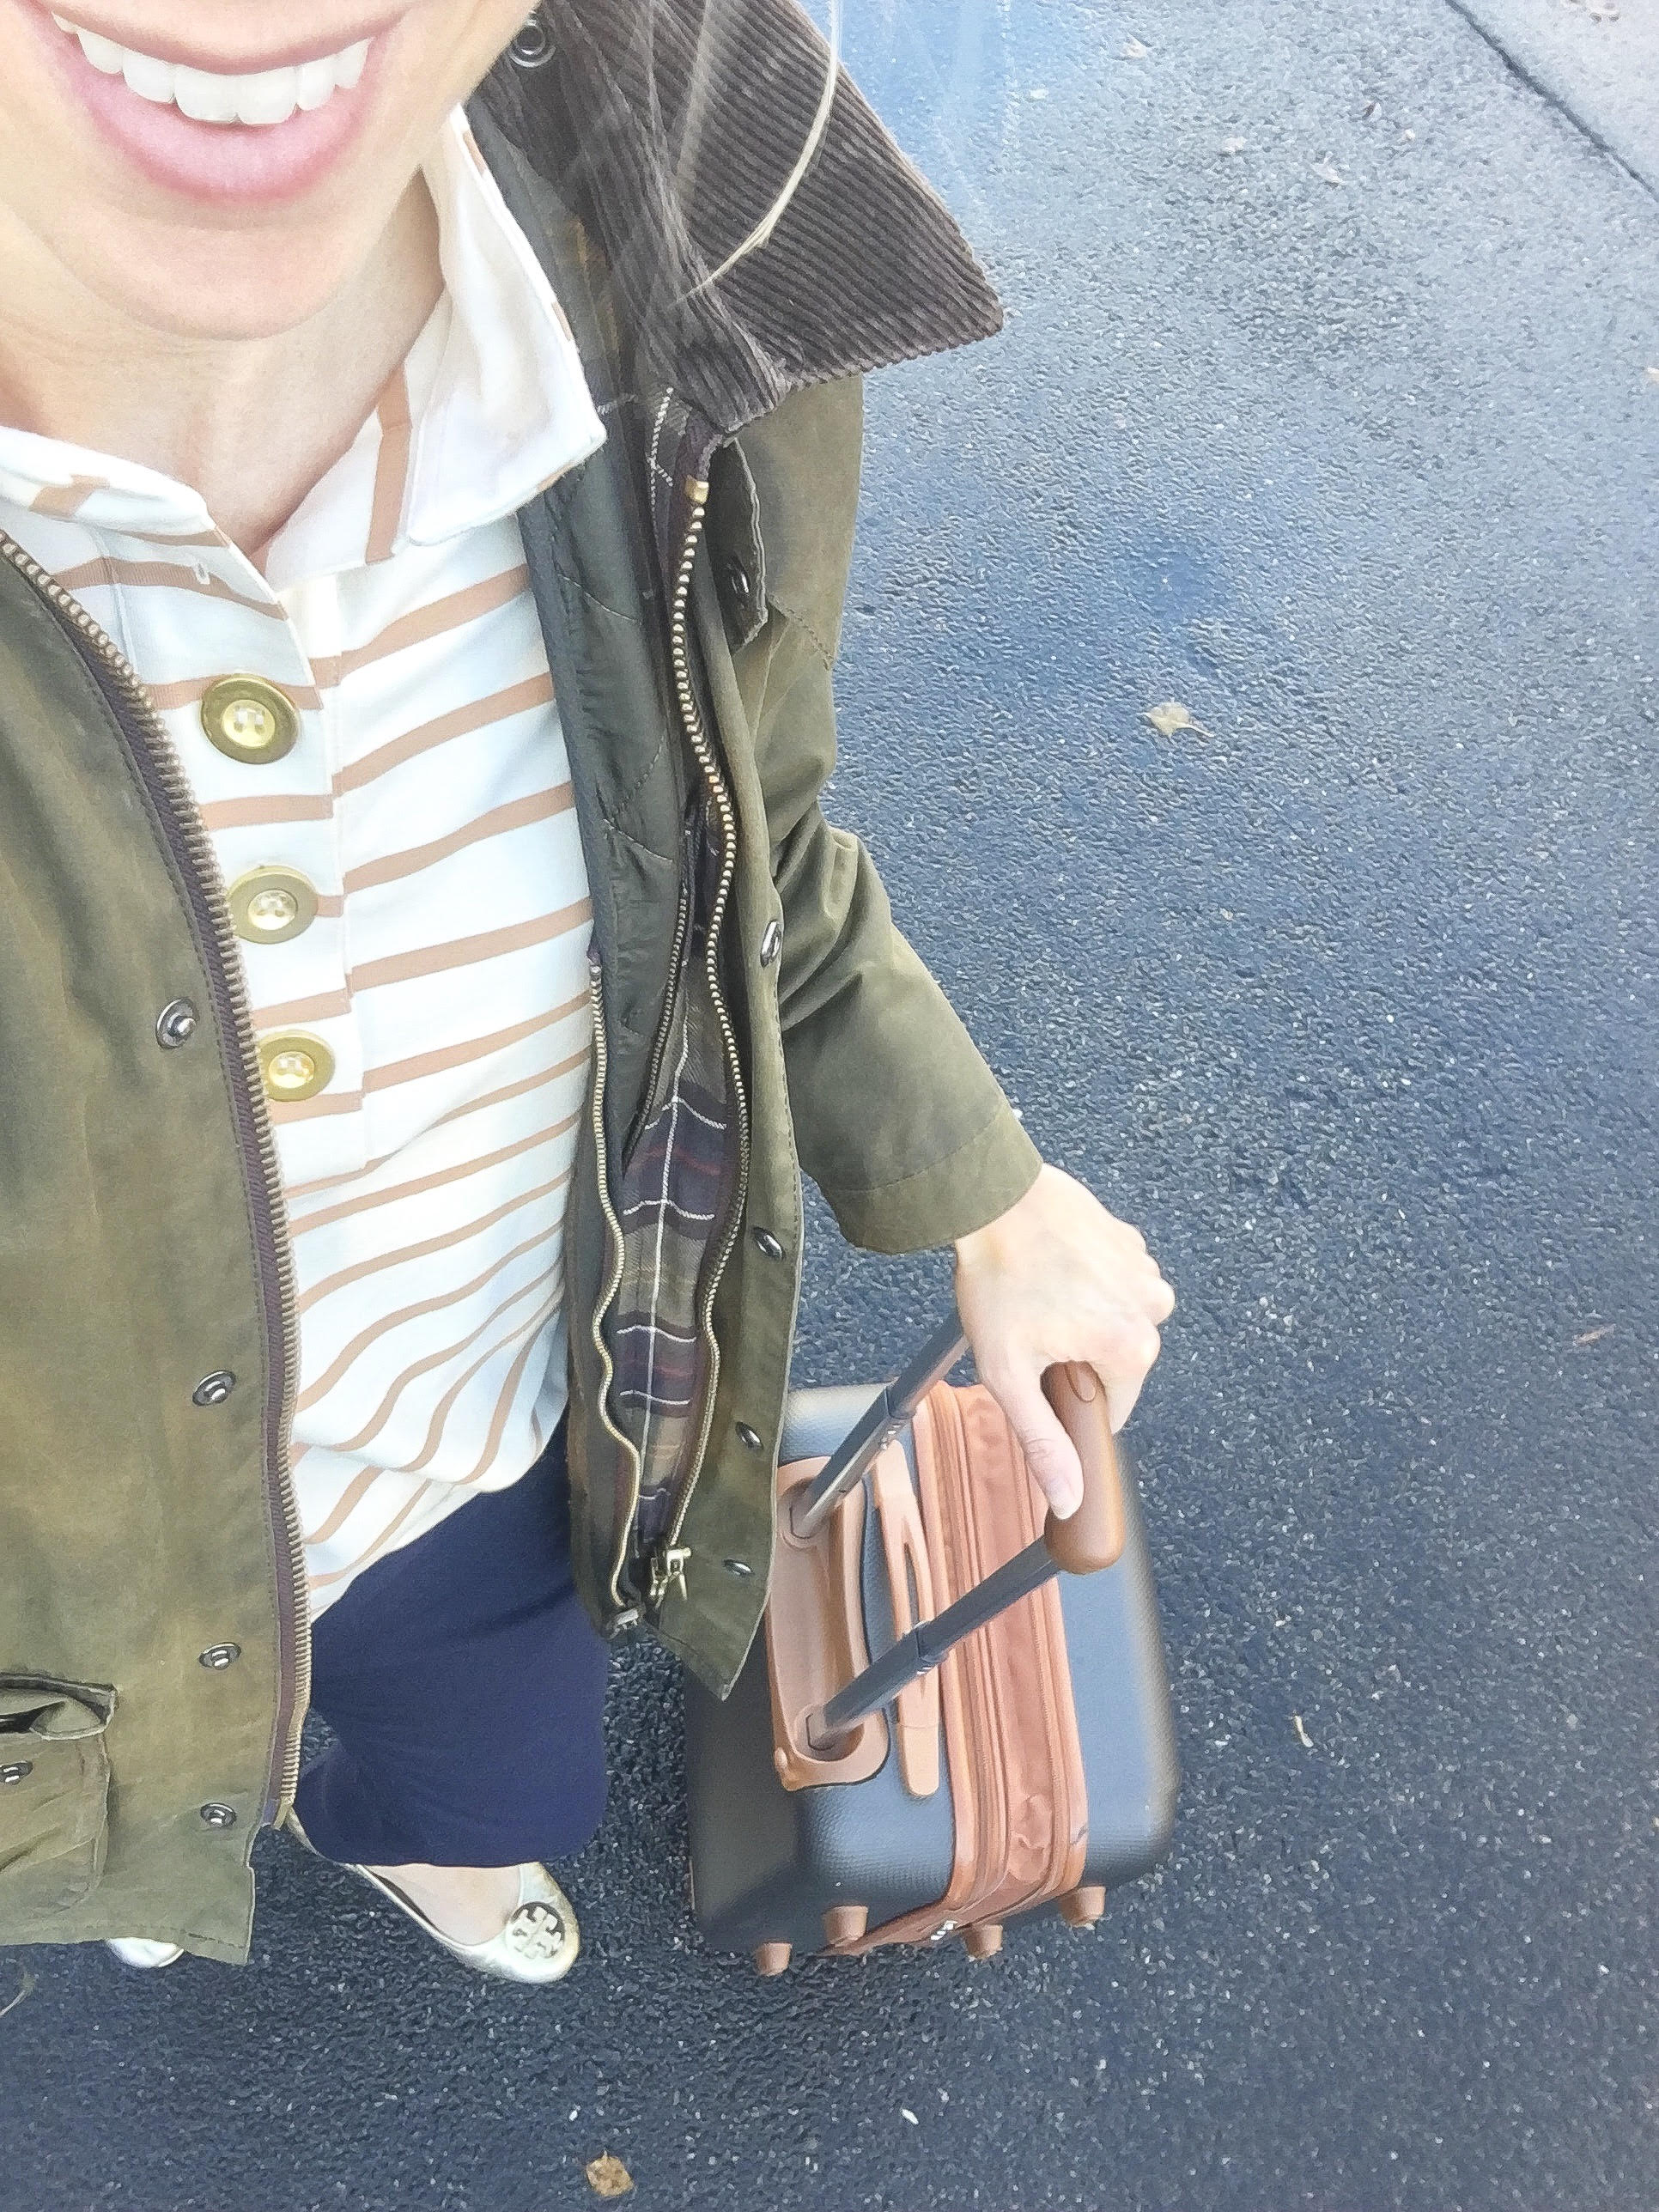 Fall-lilworkstyle-Jcrew Pants-Monelle Top-Barbour